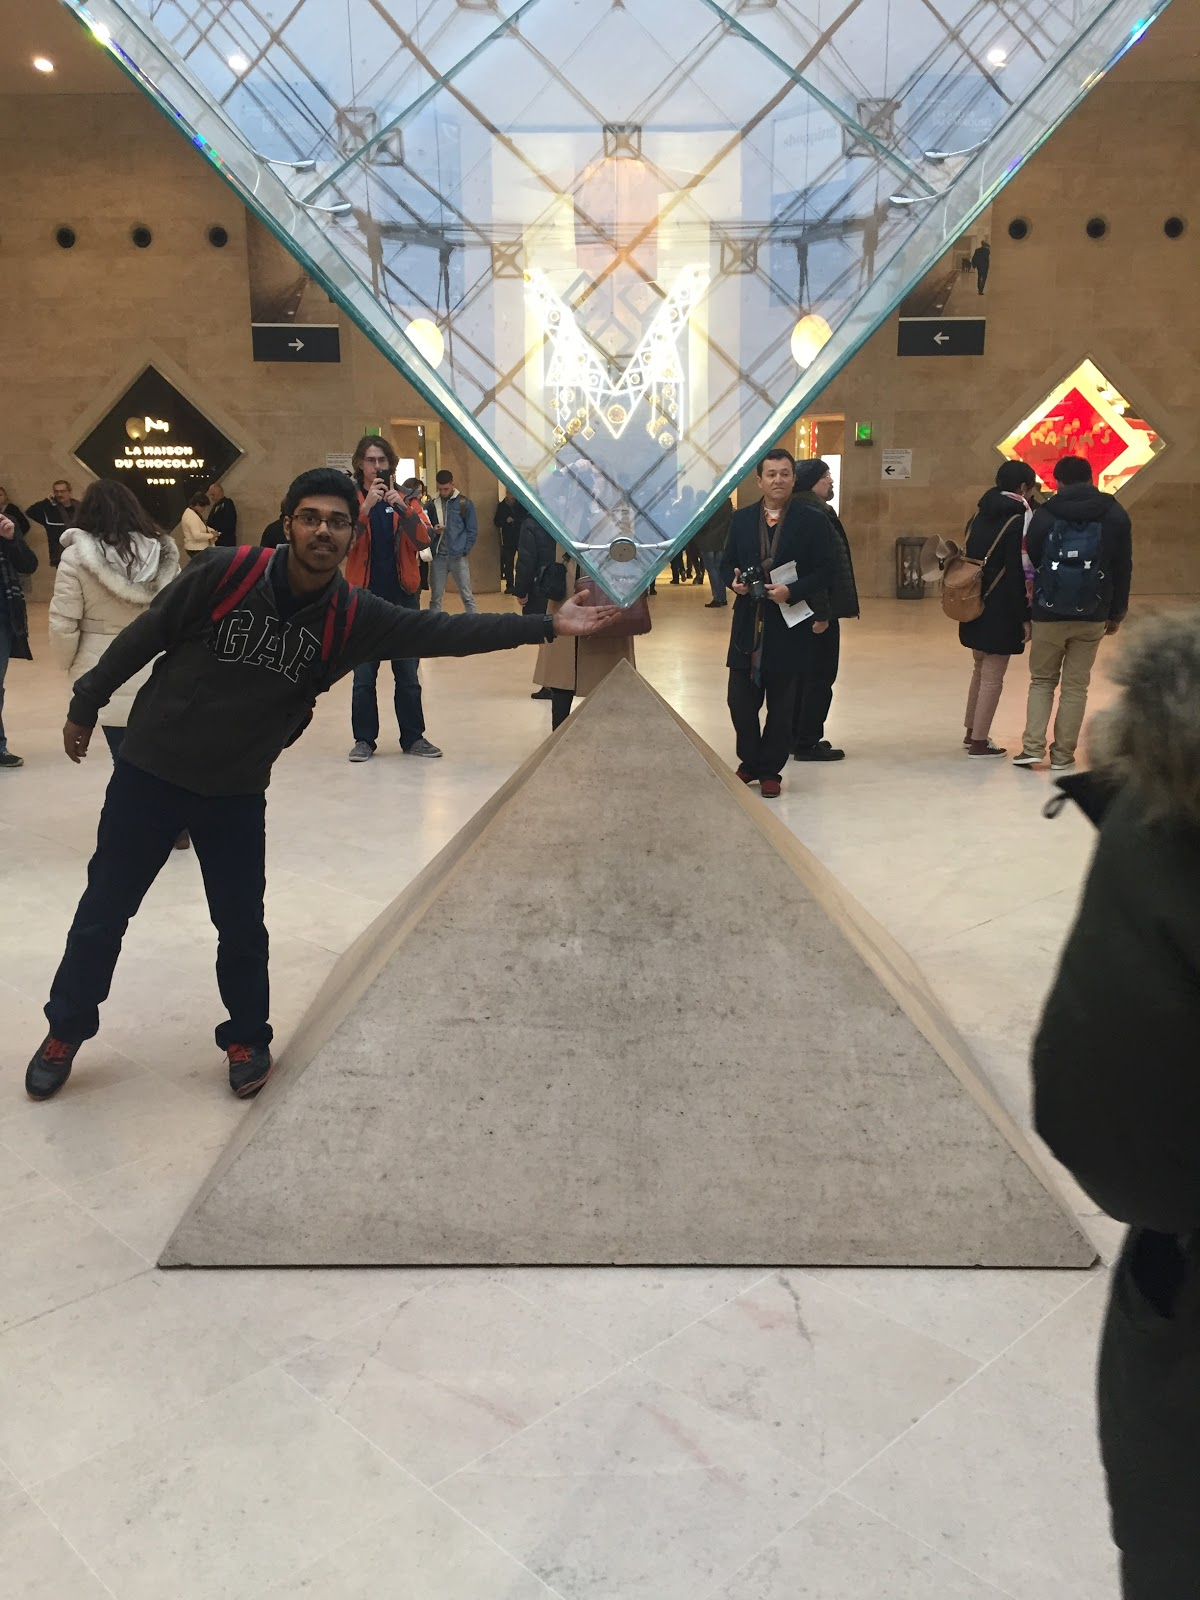 Just a customary pose in Louvre Museum Paris